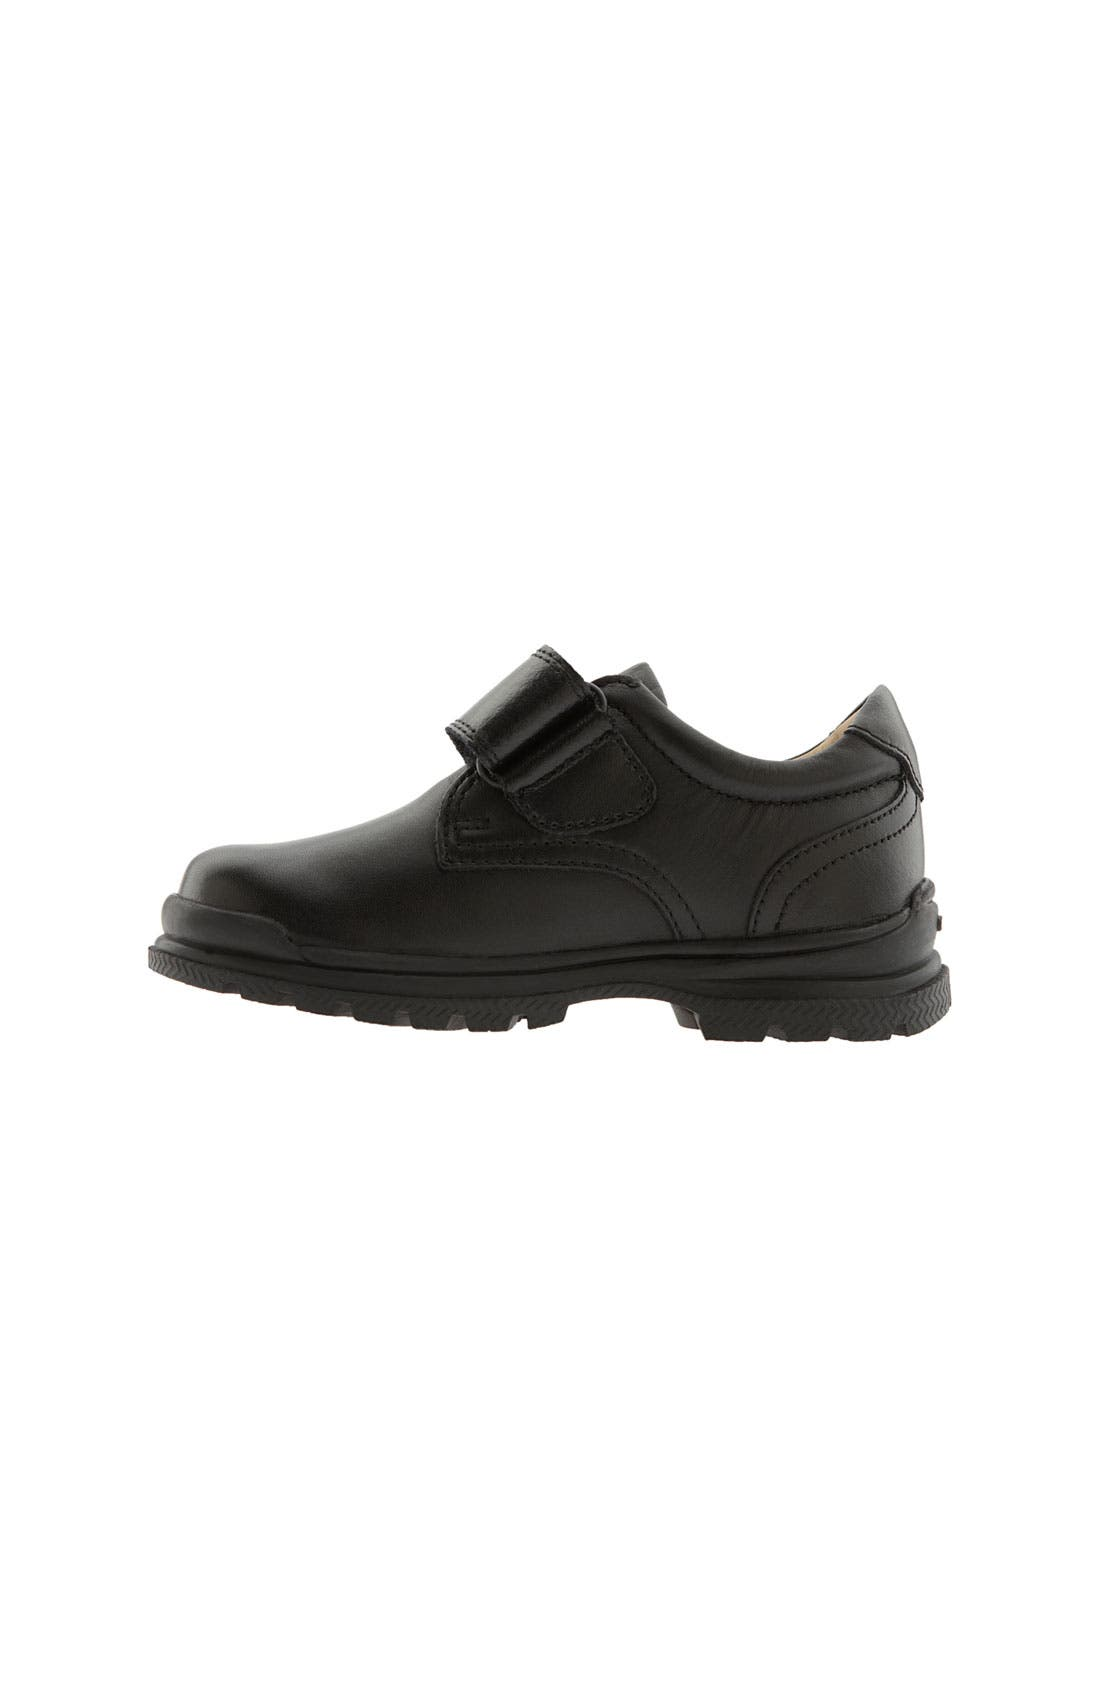 Alternate Image 2  - Geox 'William' Oxford (Toddler, Little Kid & Big Kid)